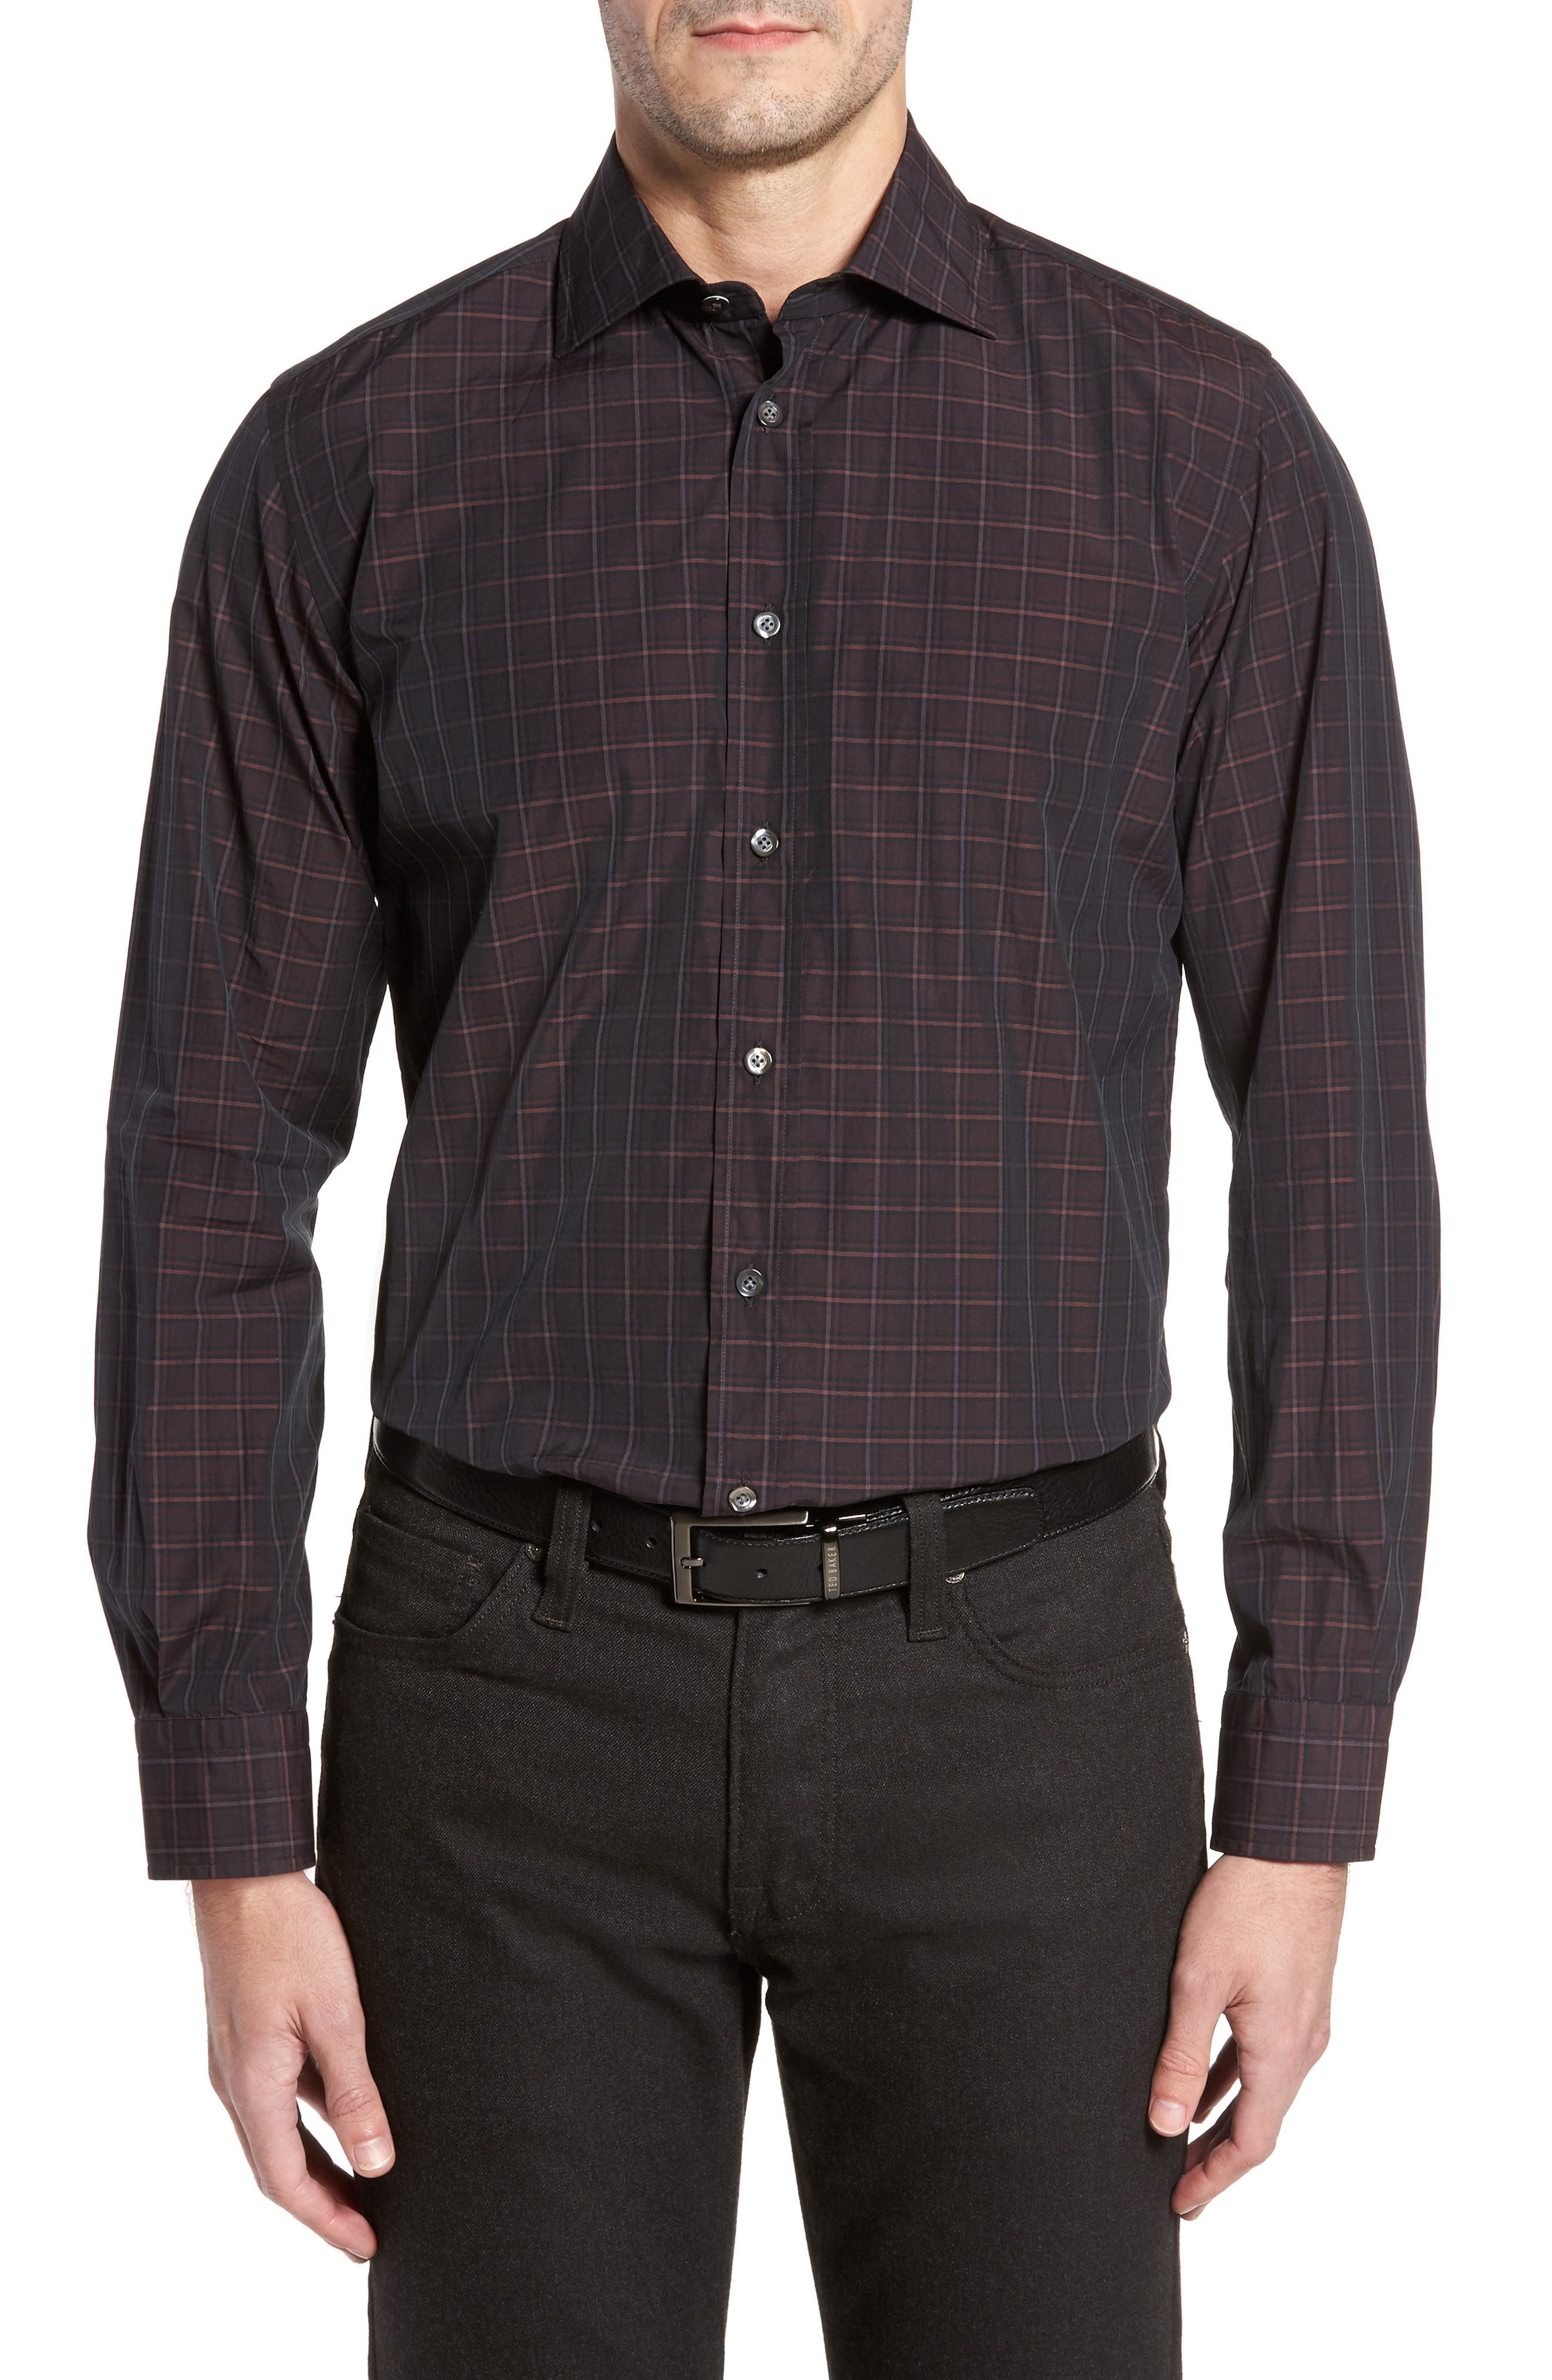 Alternate Image 1 Selected - Luciano Barbera Trim Fit Windowpane Print Sport Shirt